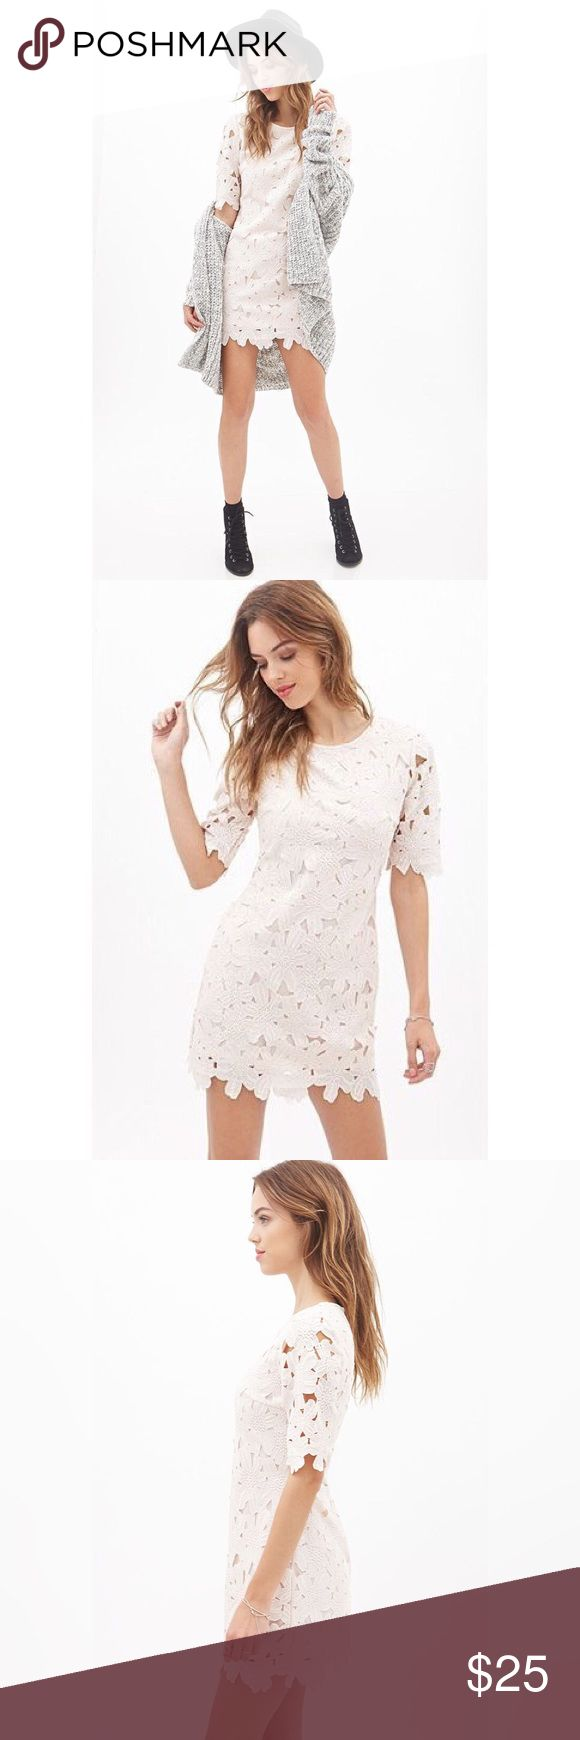 ✨Women's Pink Floral-embroidered Scalloped Dress✨ ✨Women's Pink Floral-embroidered Scalloped Dress. 100% polyester✨ Forever 21 Dresses Mini